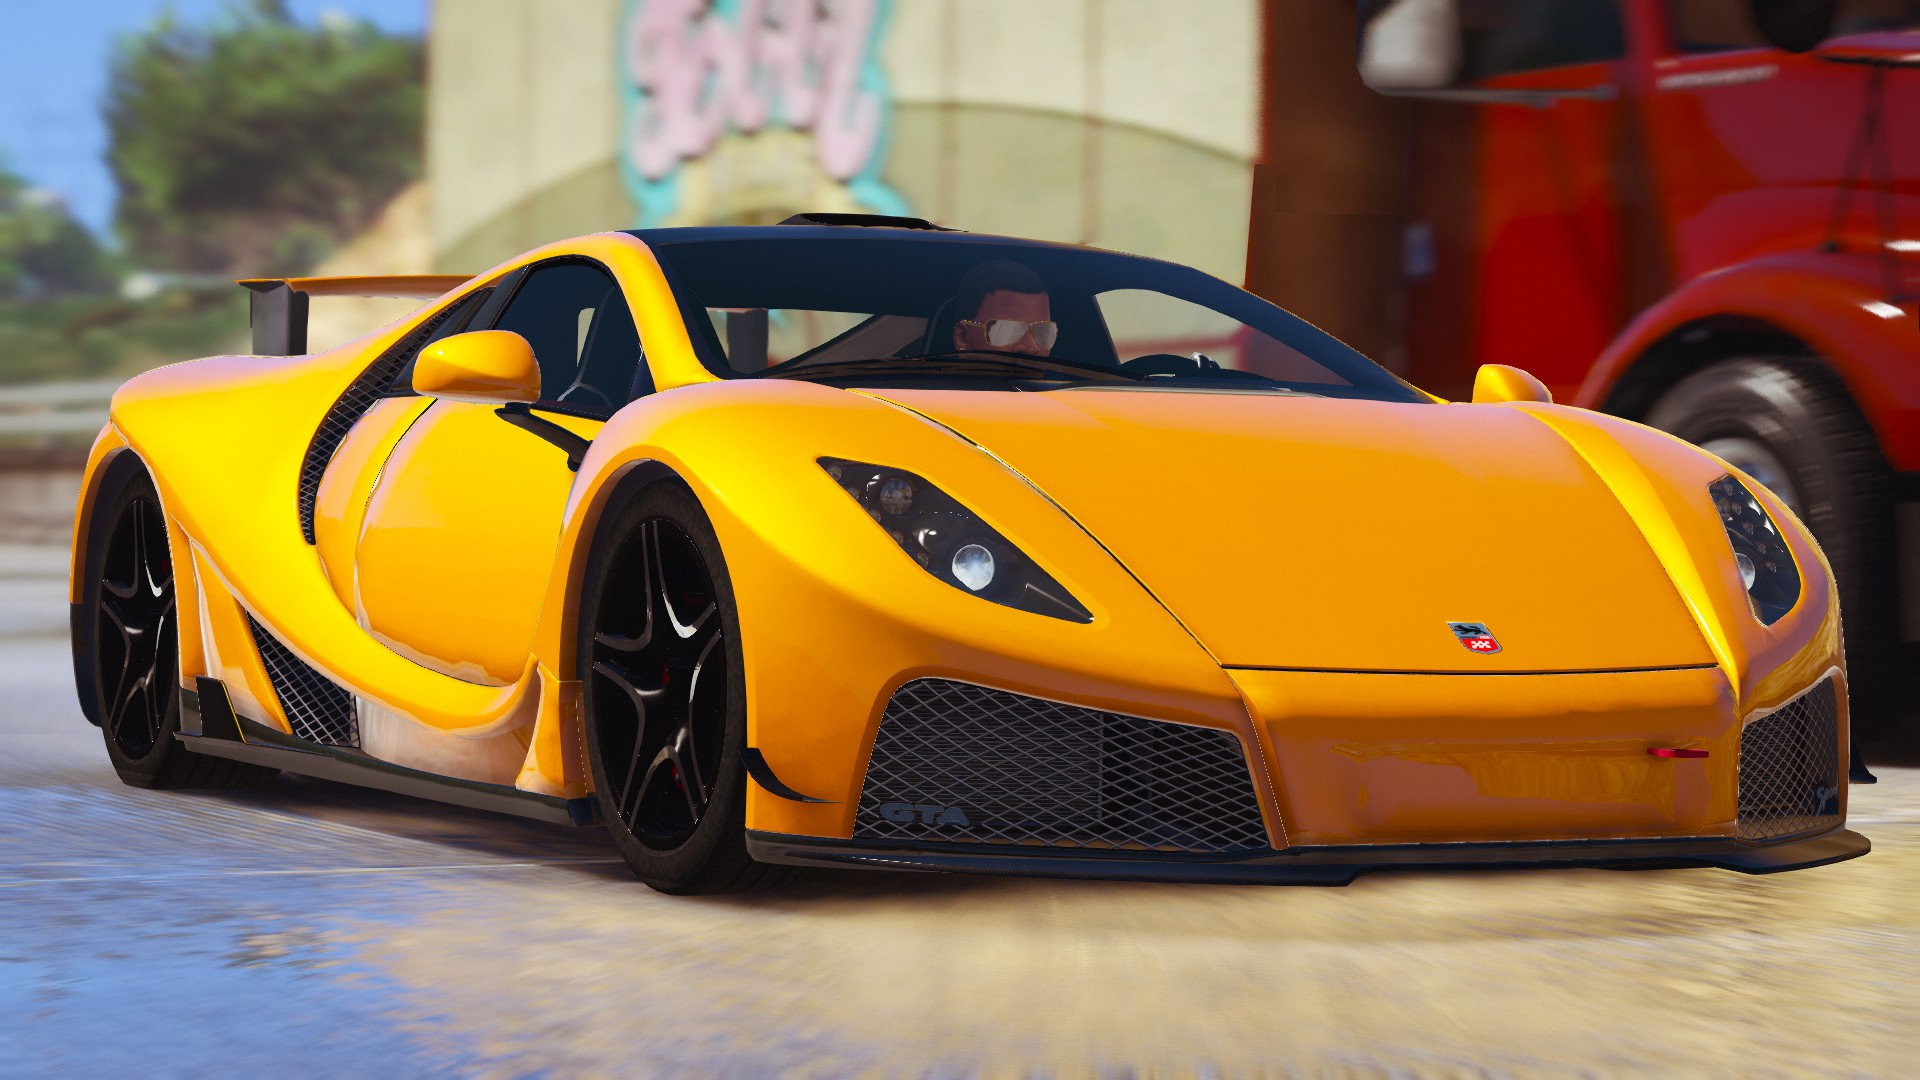 Hd Nfs Cars Wallpapers Gta Spano Add On Tuning Auto Spoiler Gta5 Mods Com